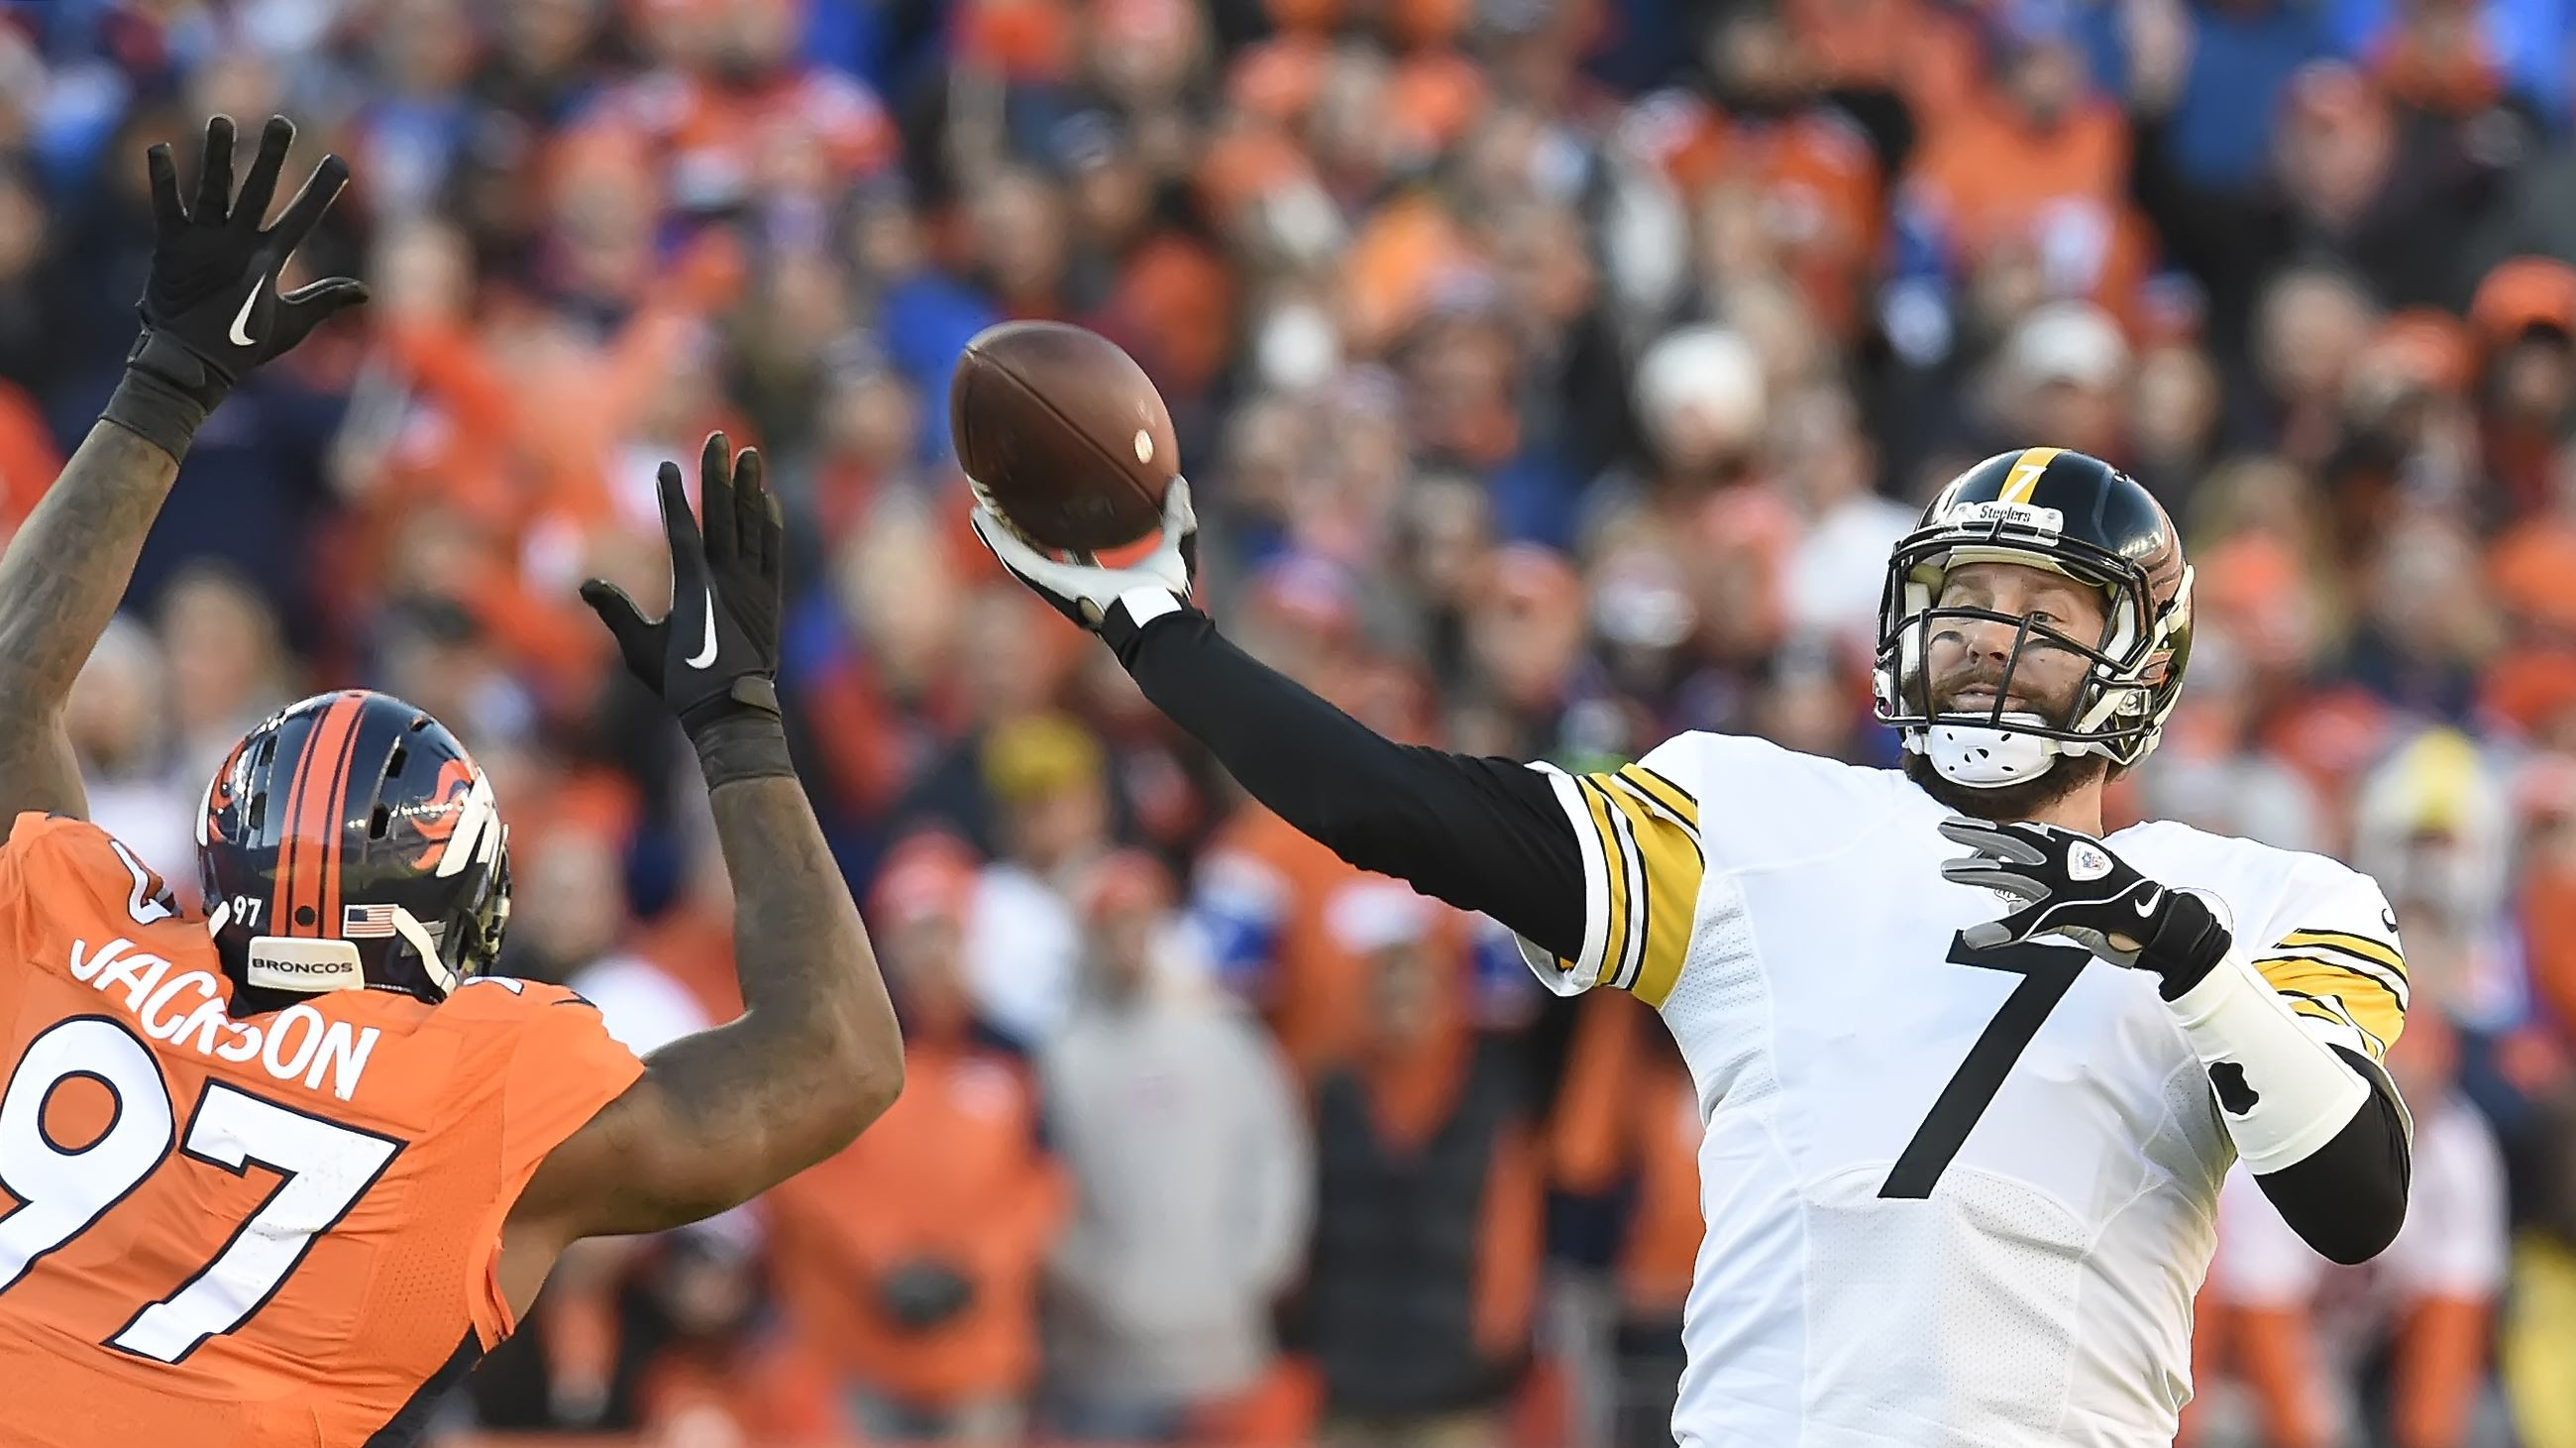 Roethlisberger says right shoulder requires rest, not surgery